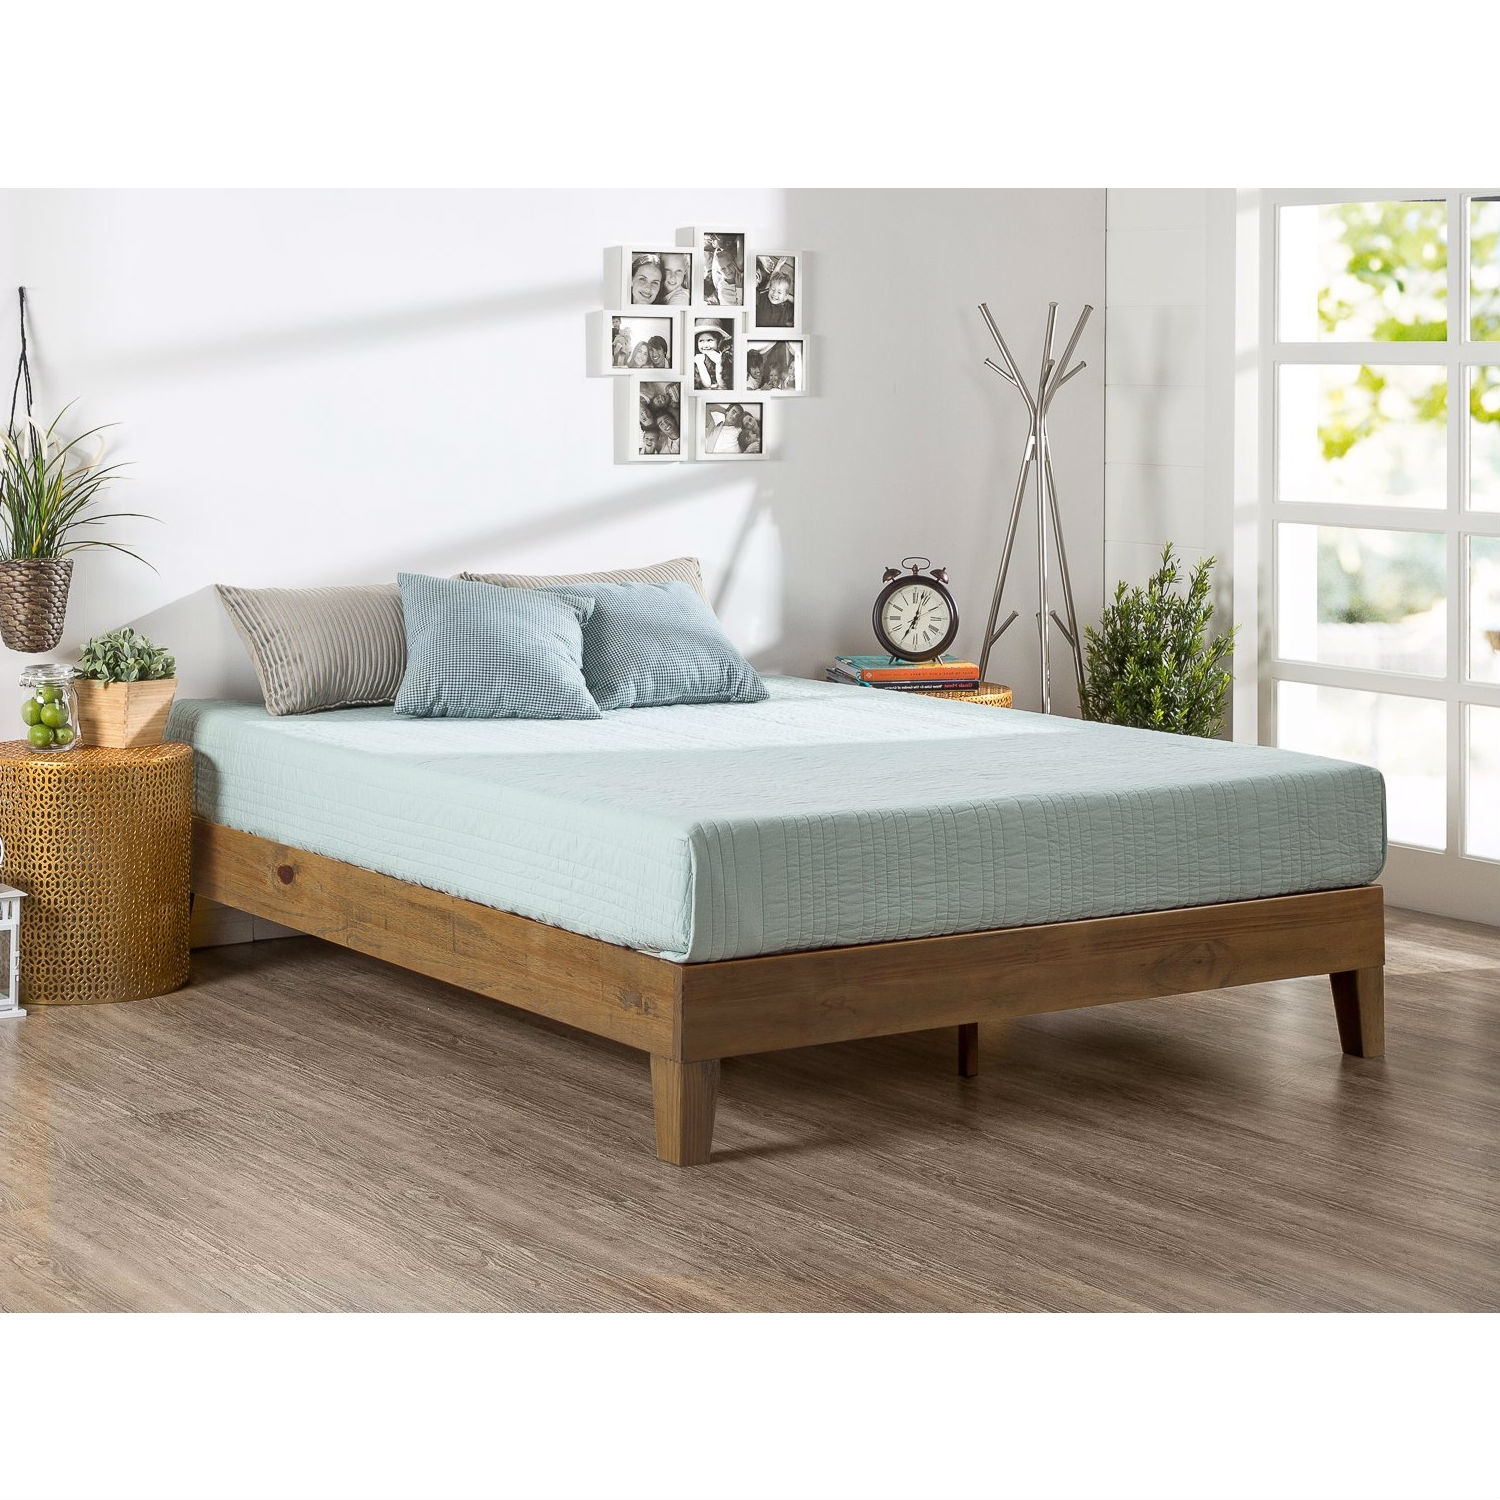 Picture of: Full Size Solid Wood Low Profile Platform Bed Frame In Pine Finish Fastfurnishings Com